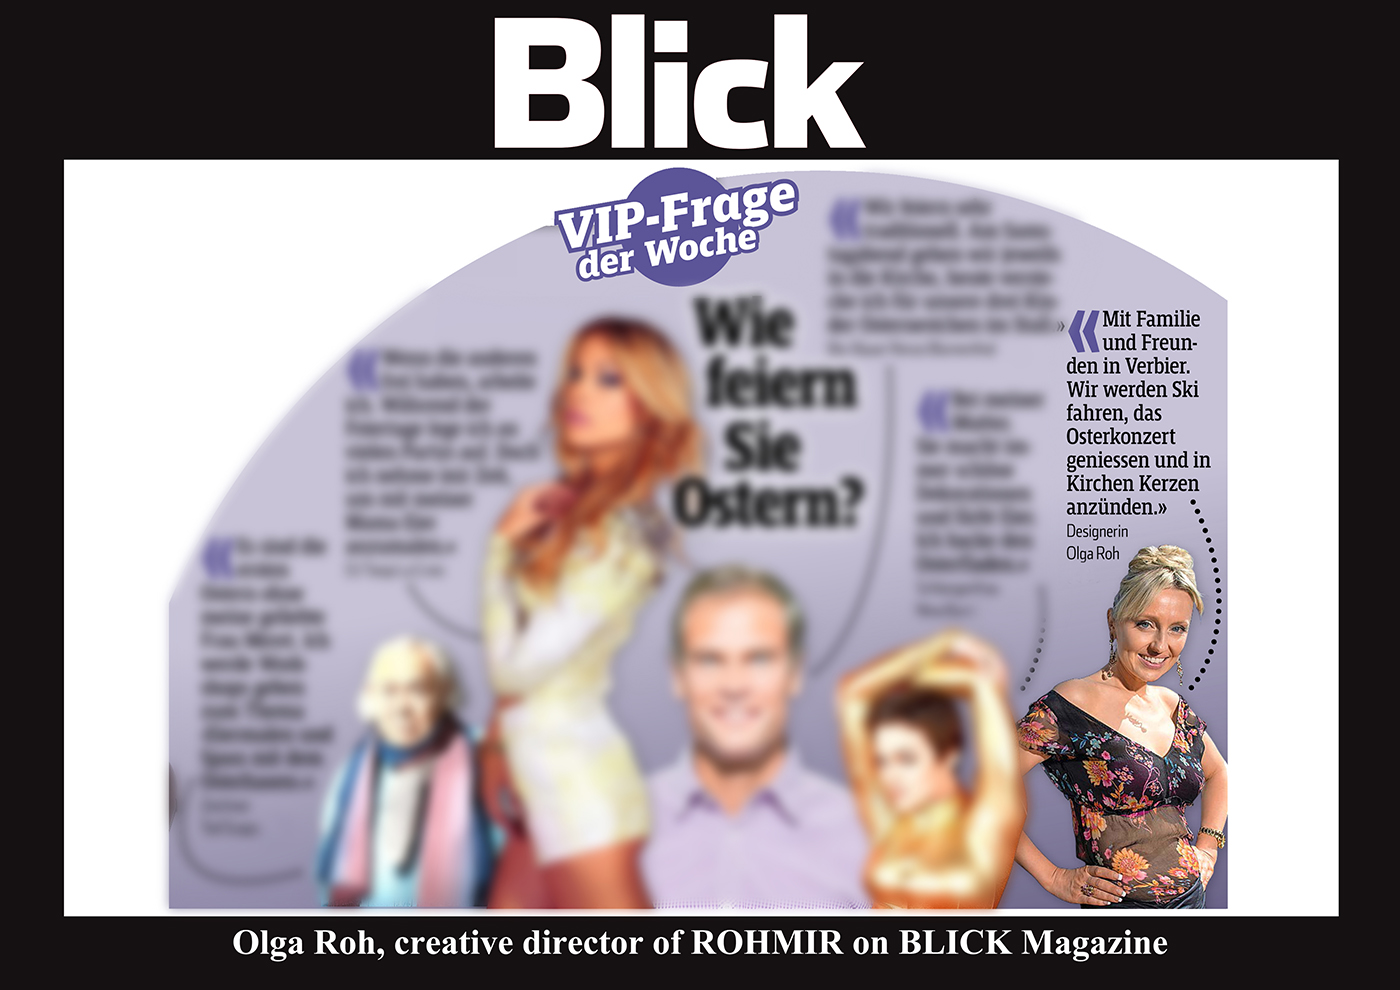 Olga Roh, creative director of ROHMIR on BLICK Magazine